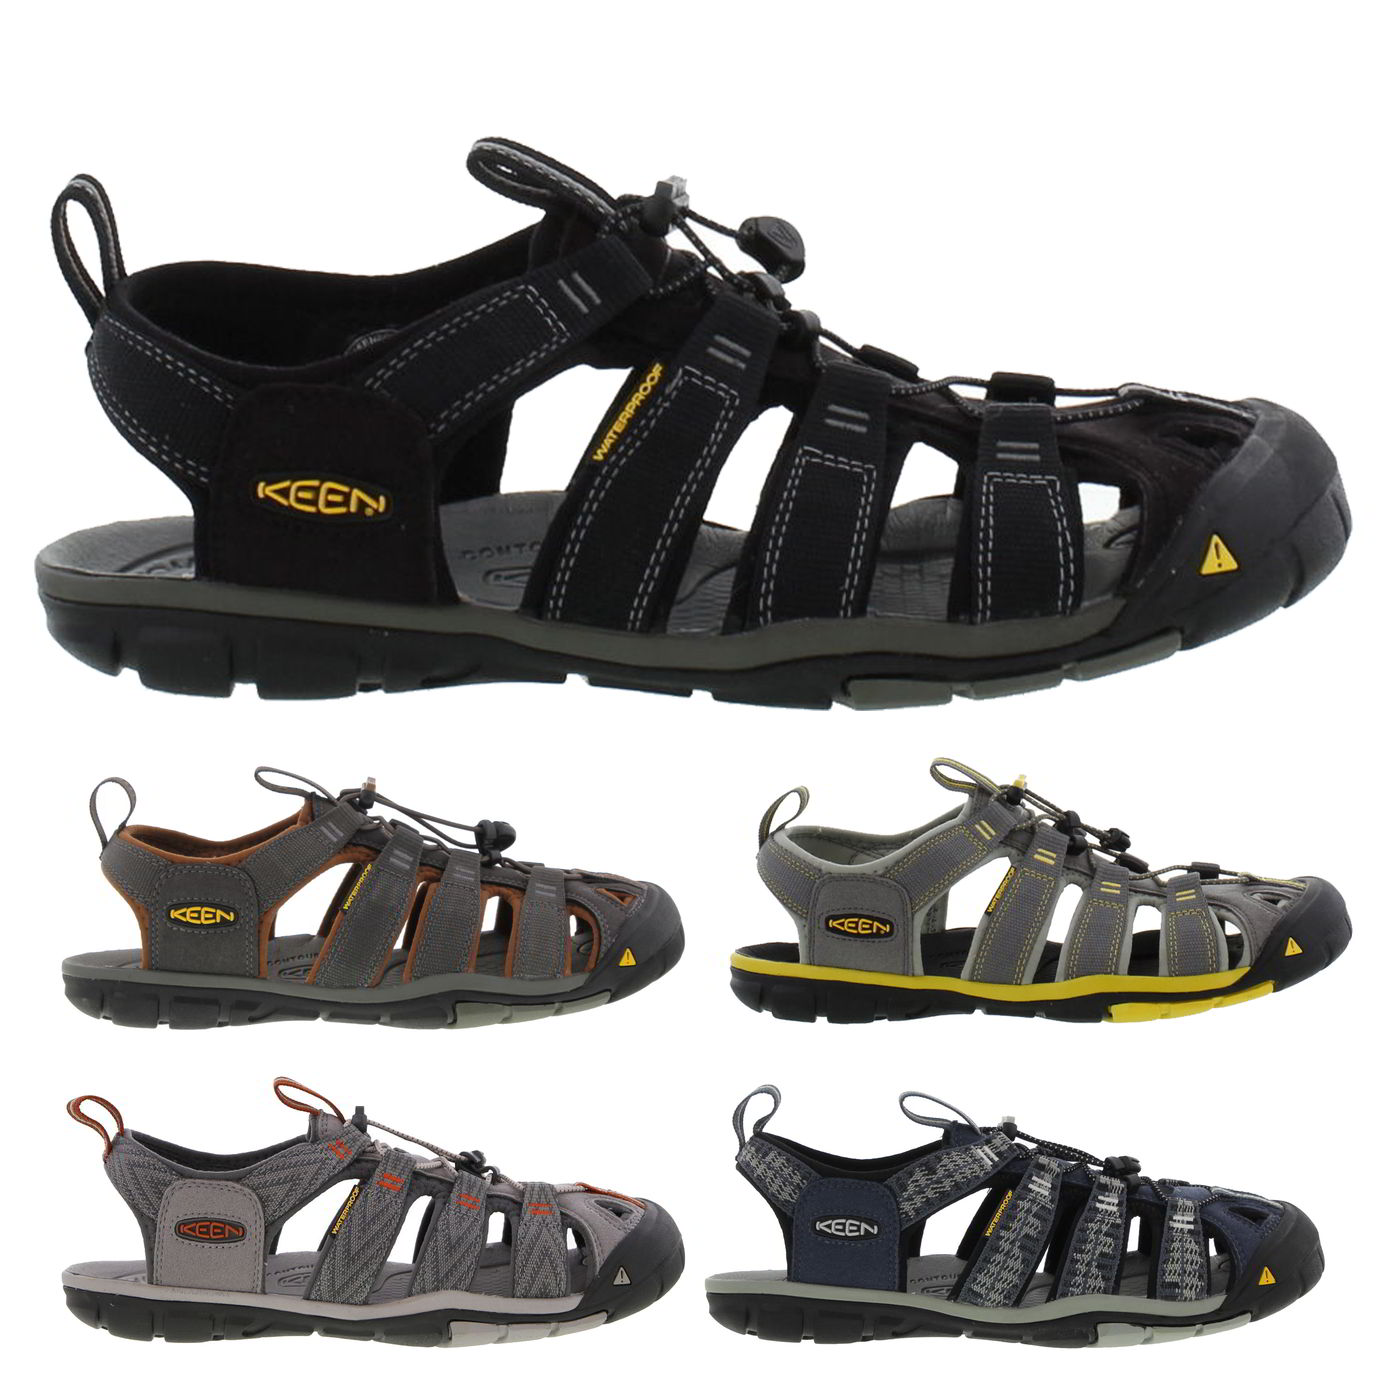 4fea8fd1b51 Details about Keen Clearwater CNX Mens Adjustable Walking Water Sandals  Size UK 7-14